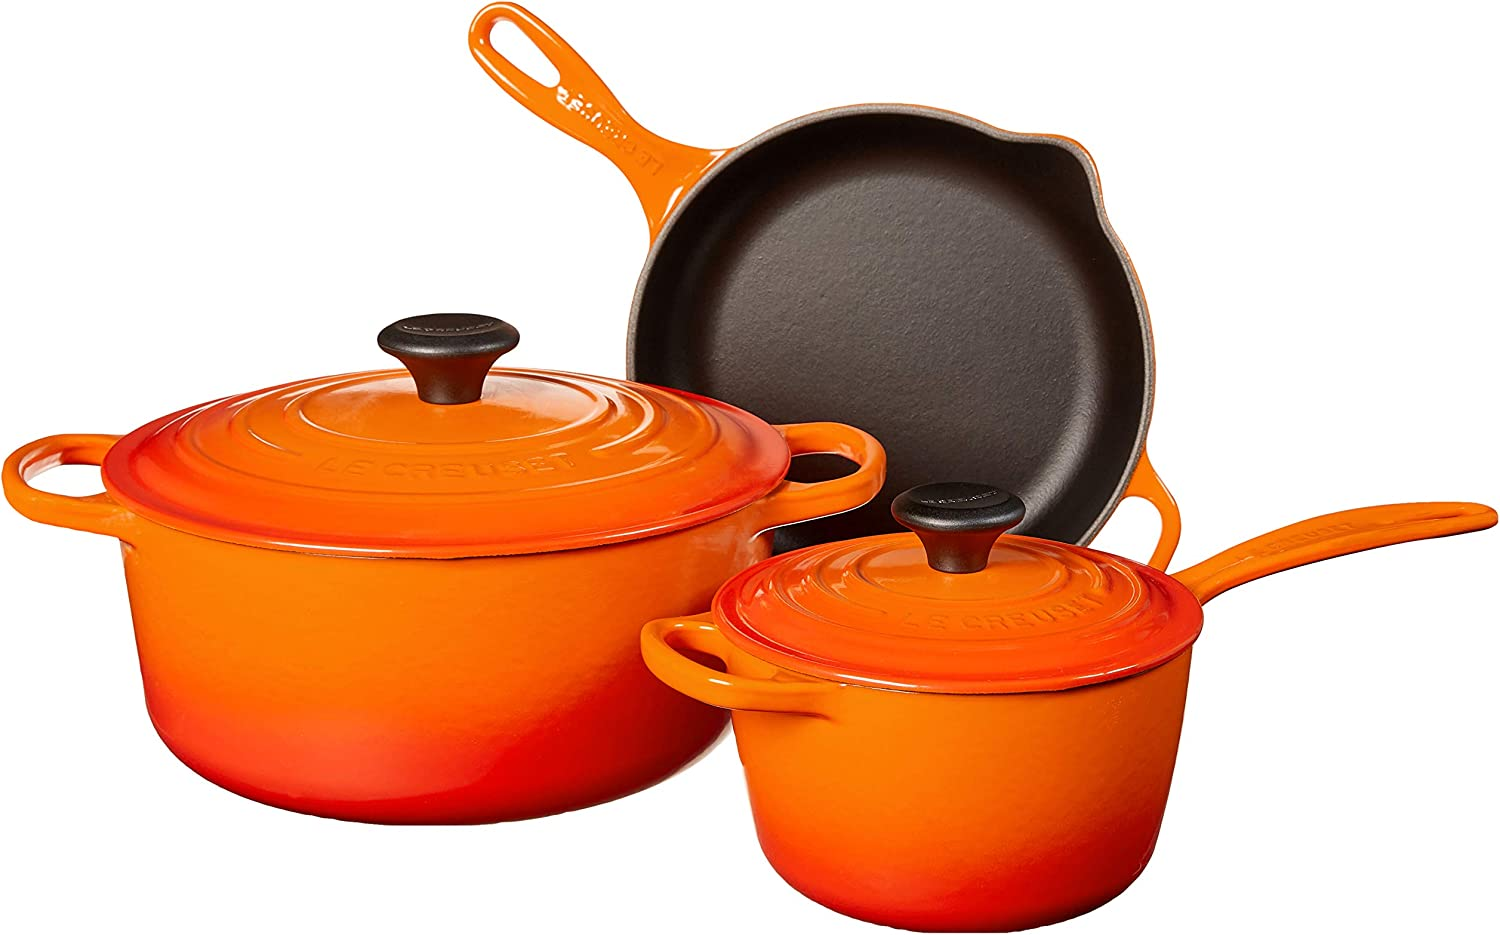 Le Creuset Enameled Cast Iron Signature Cookware Set, 5 pc. , Flame